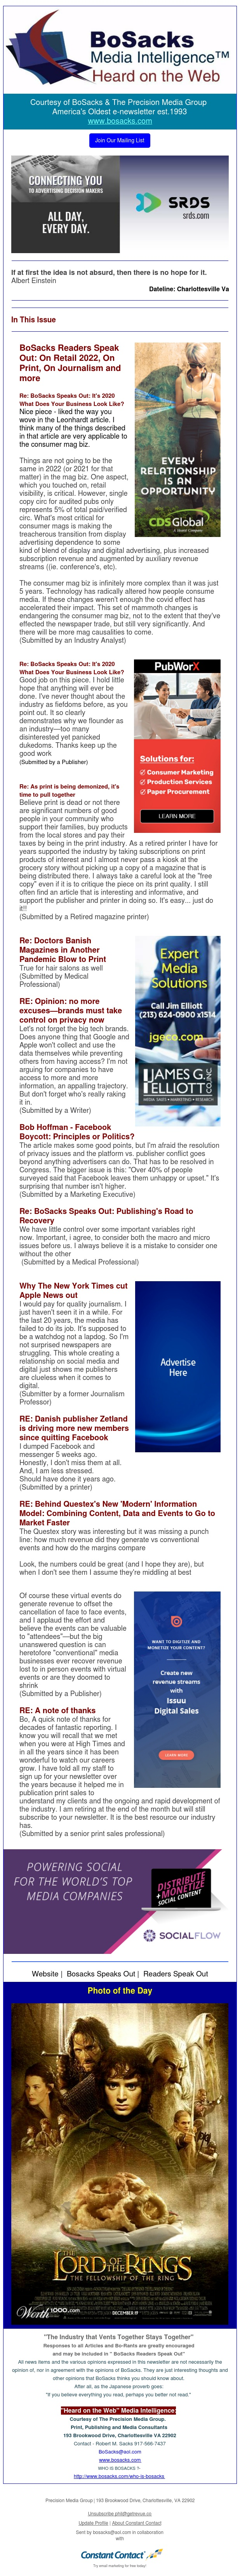 BoSacks Readers Speak out: On Retail 2022, On Print, On Journalism and more